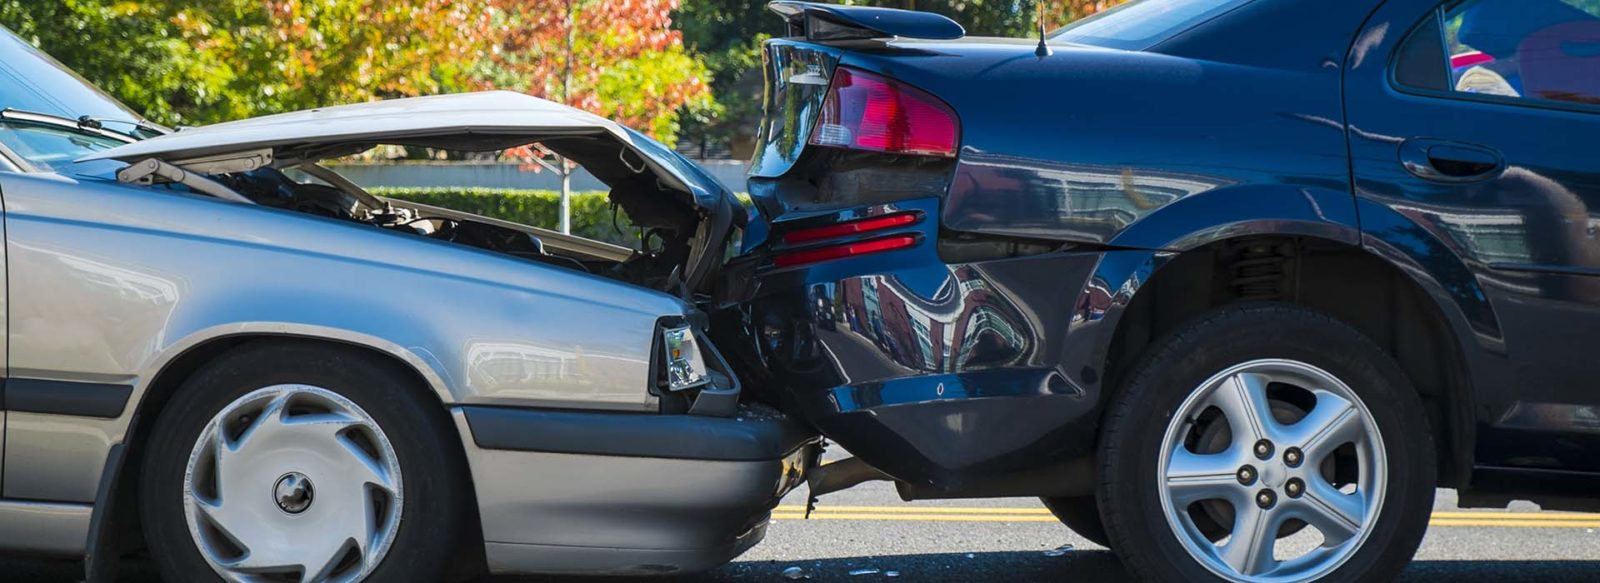 Auto Accident Attorney - Douglas Rallo